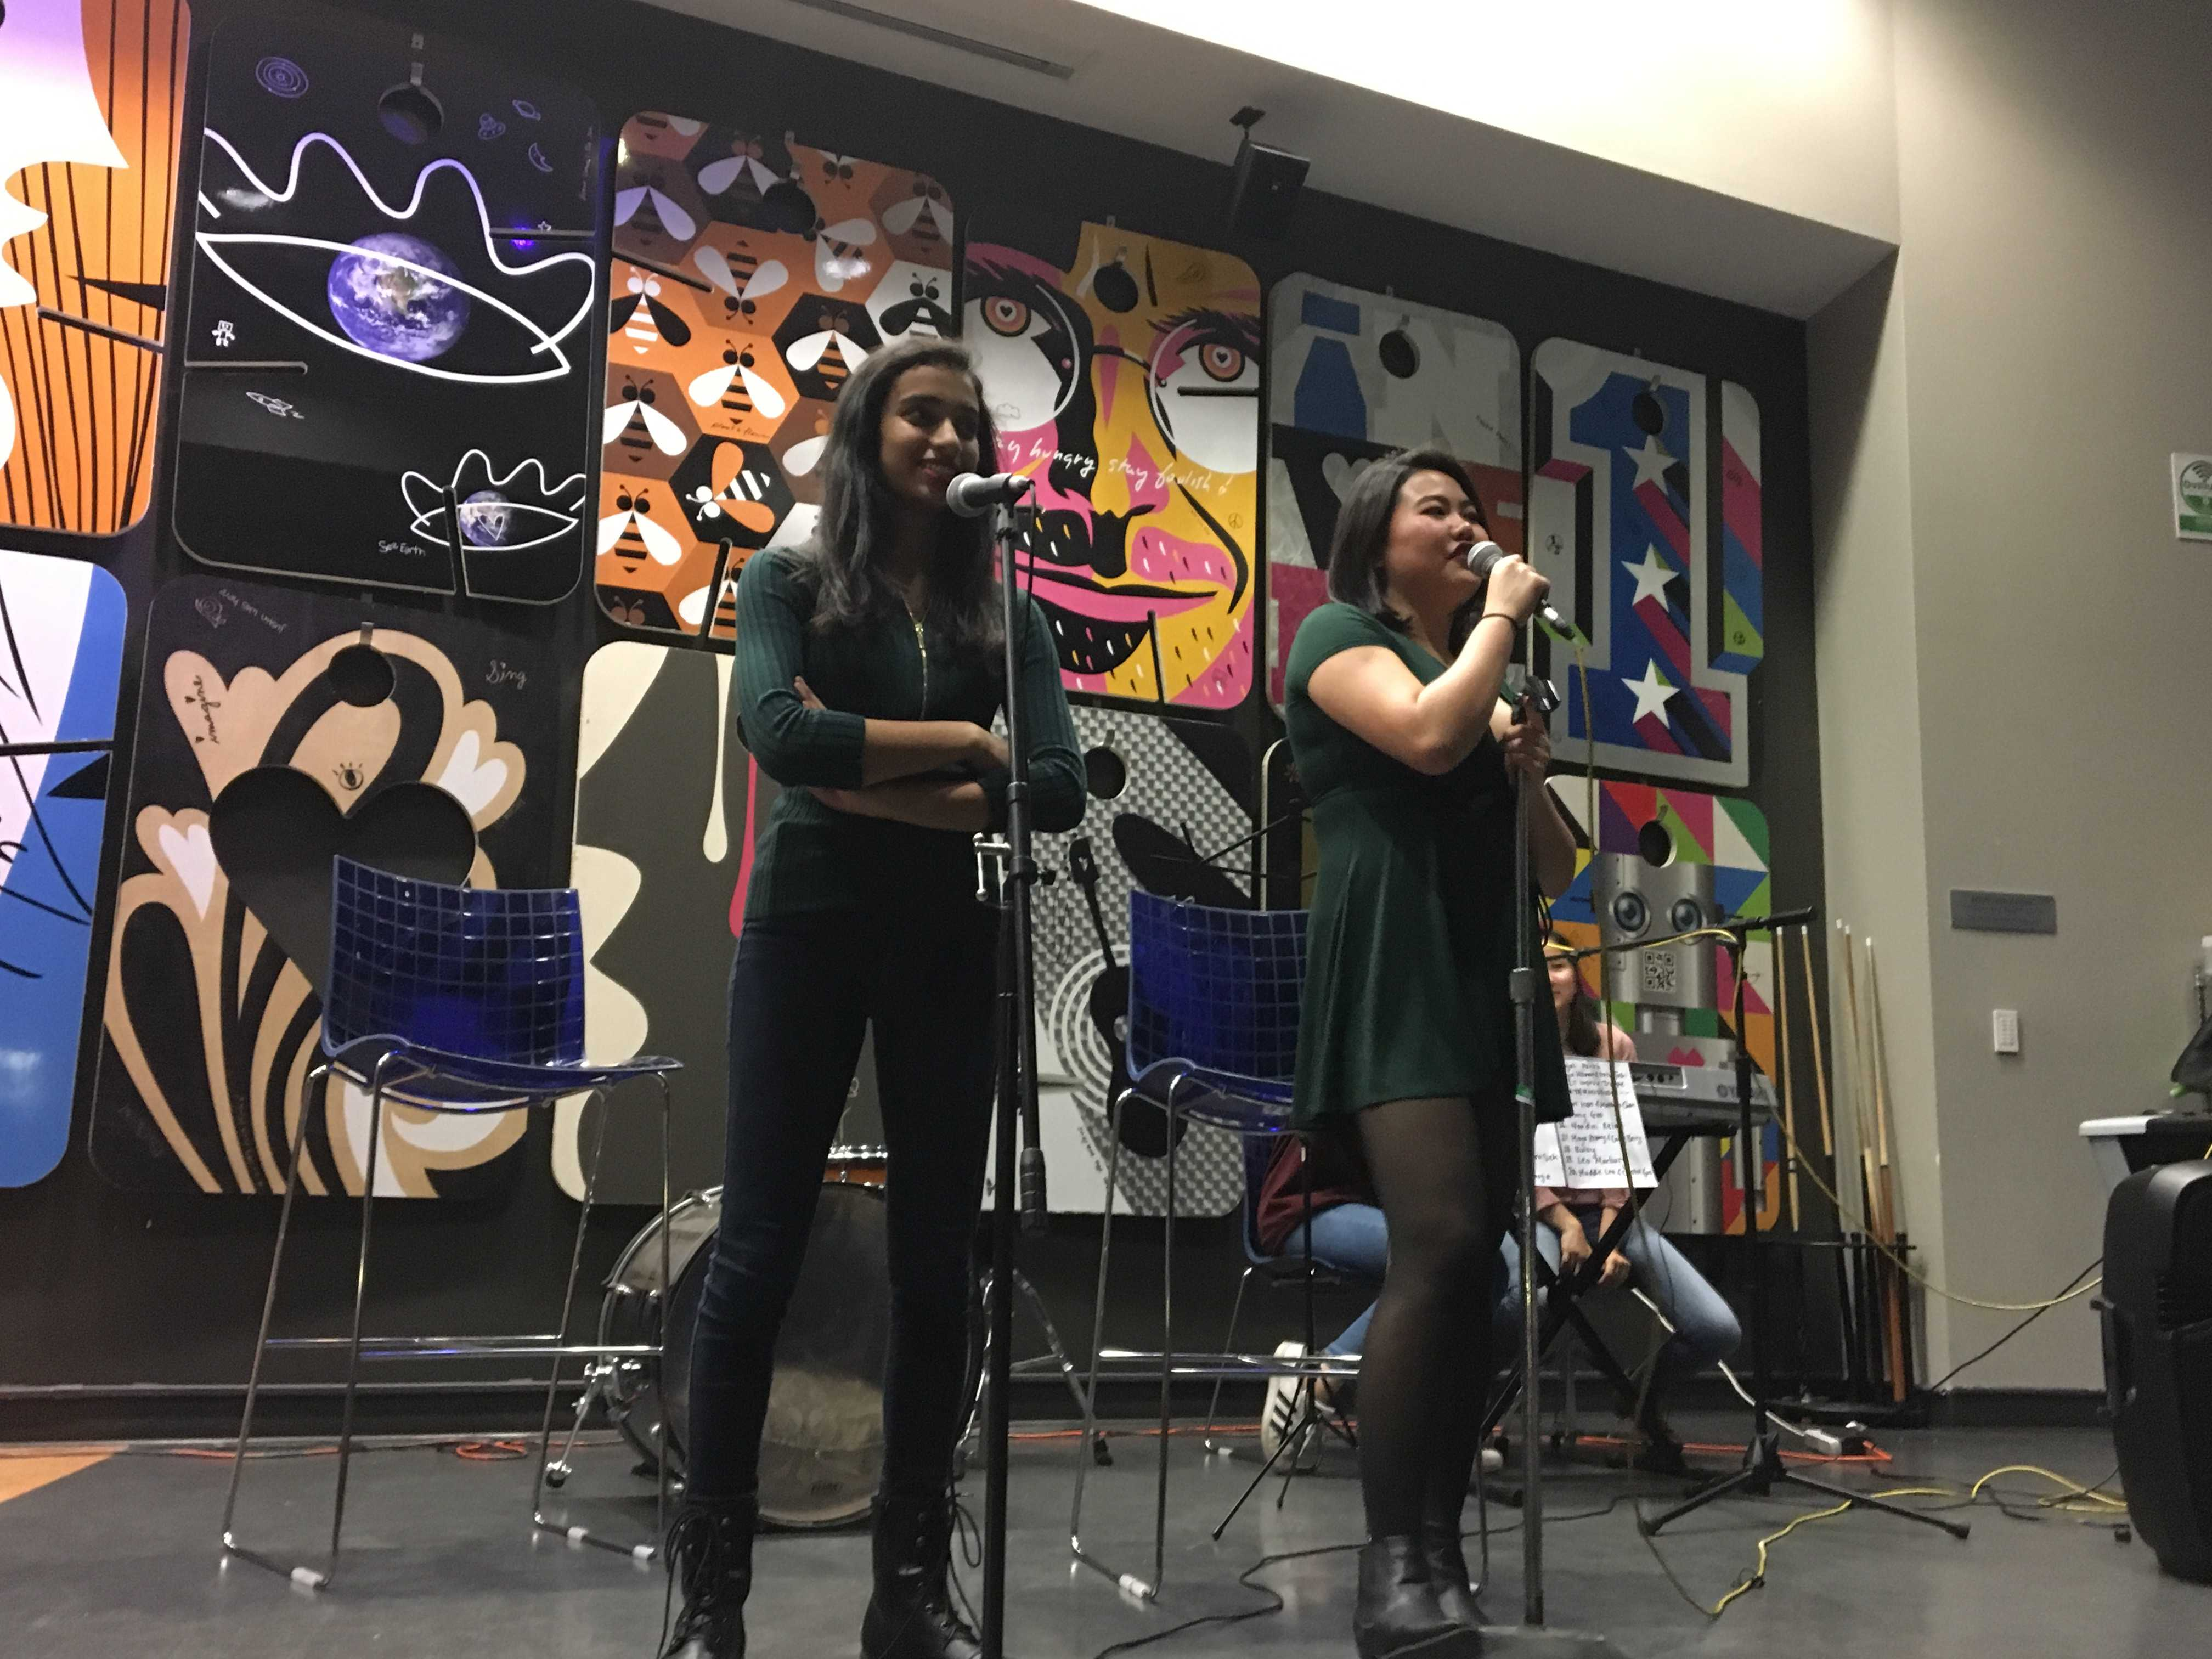 "TAC President Nandini Relan and Publicity Officer Emily Zhang (left to right) introduce the next performer. ""The best part [of open mics] I have to say is just the atmosphere and getting to see such a variety of performers and performances."" Photo: Maya Akkaraju"